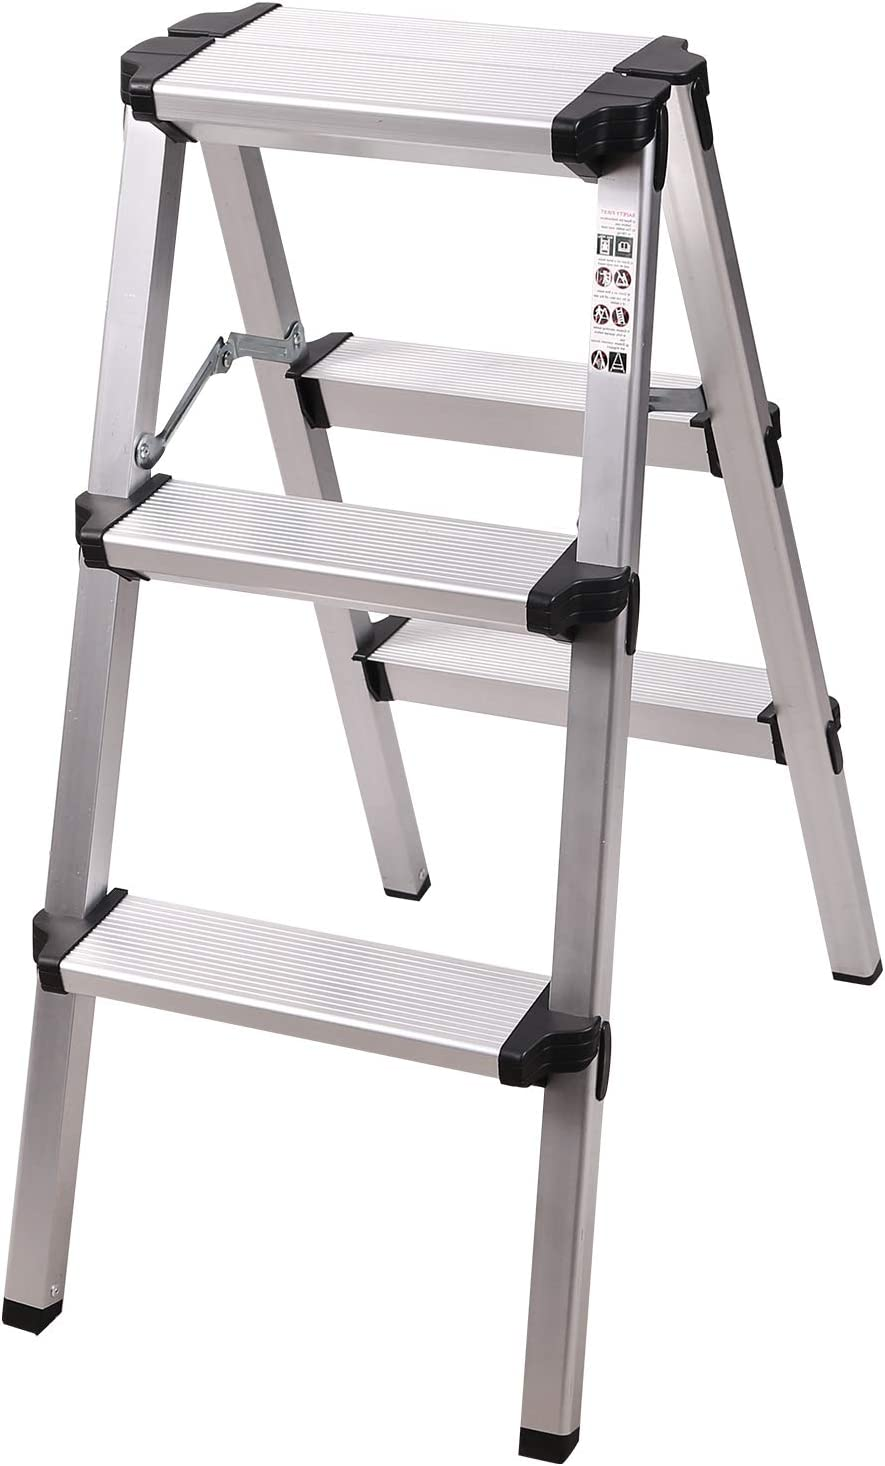 REDCAMP 2-Feet Small Step Ladder 330lbs Capacity, Lightweight Portable Folding Aluminum Step Stool Ladder for Kitchen RV Truck Use, White 3 Step